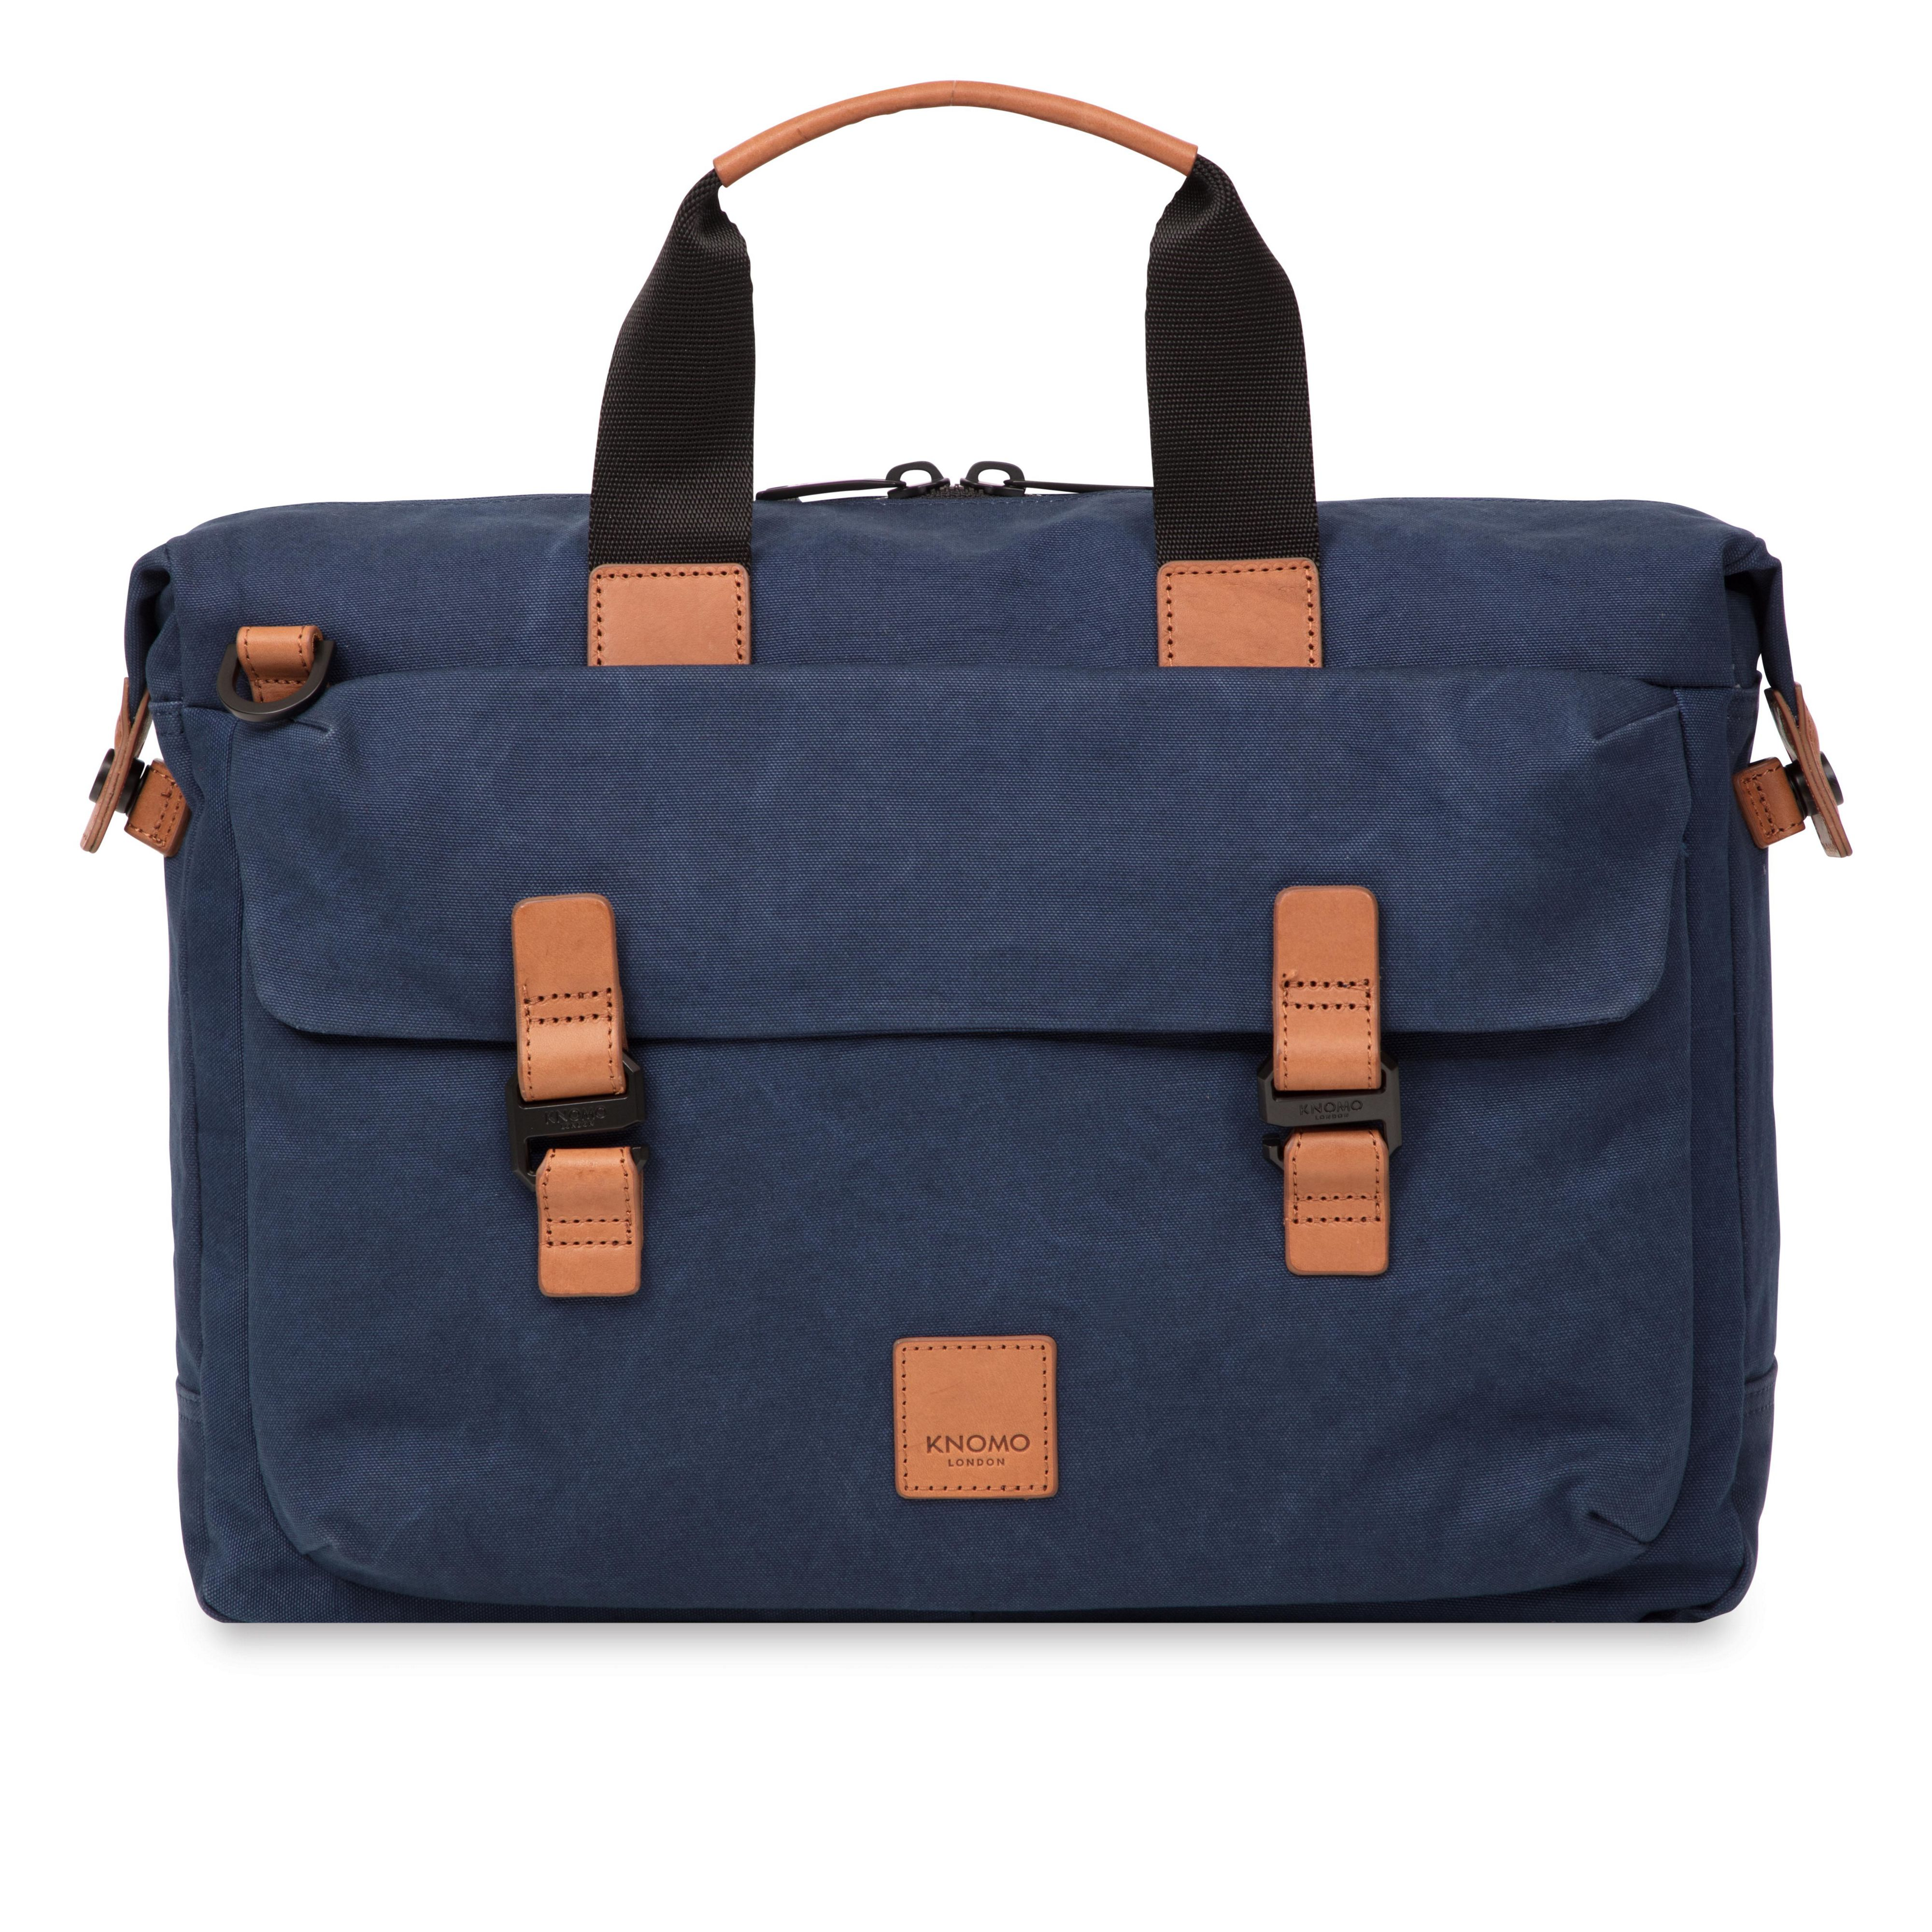 Knomo Tournay Topload Briefcase 15, Blue